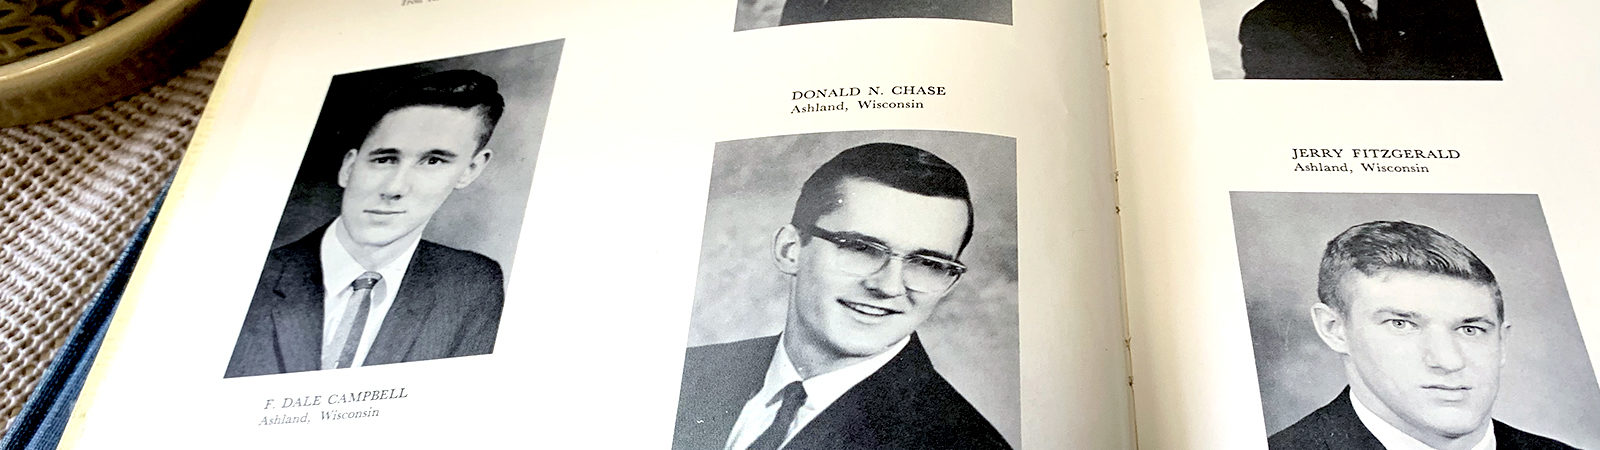 Yearbook photo of Don Chase